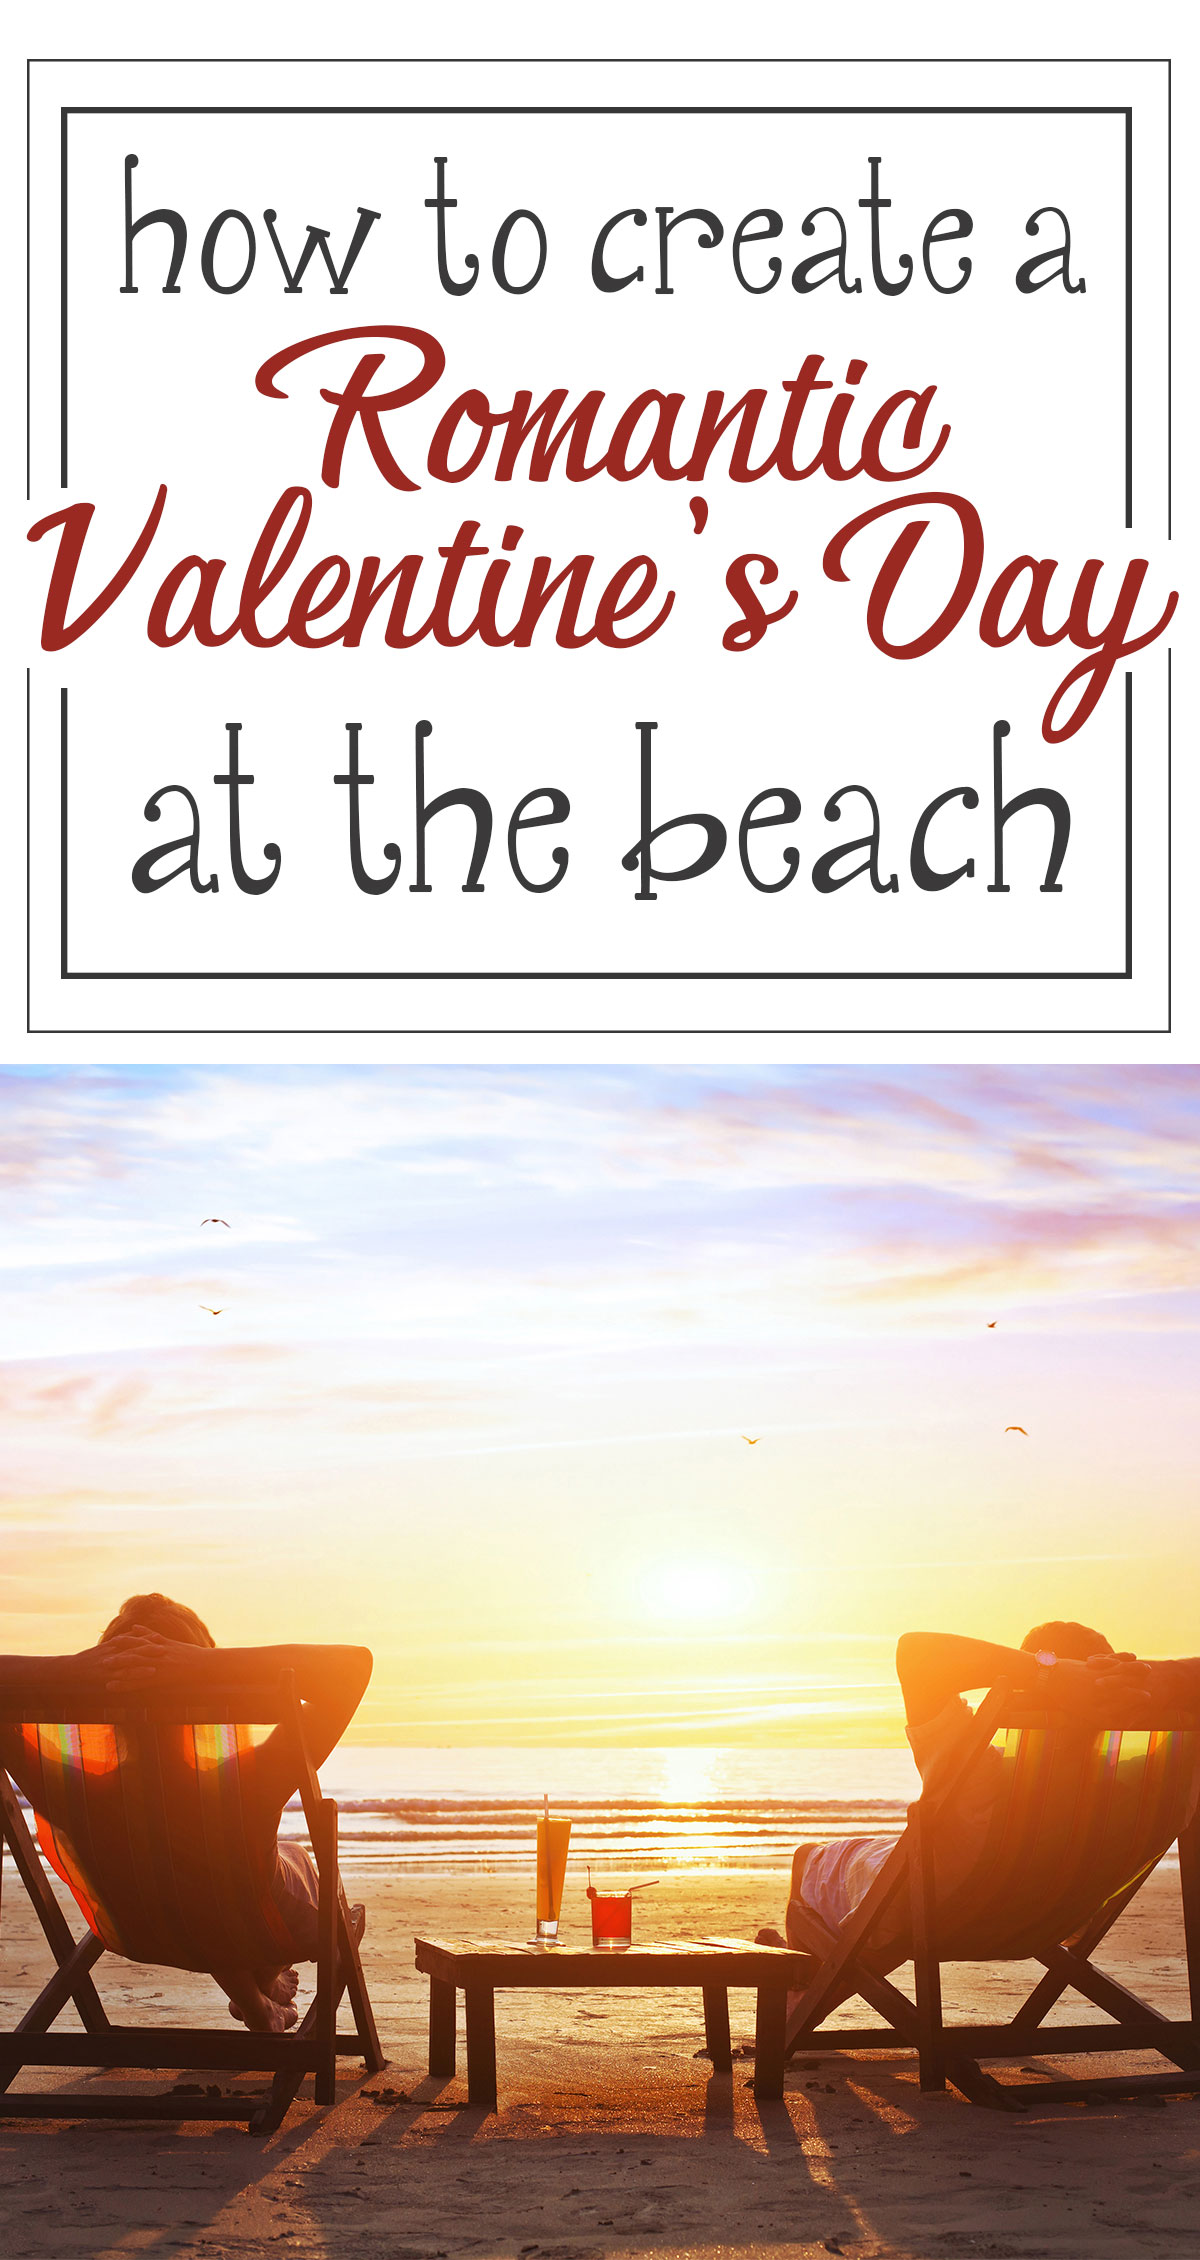 How to Create a Romantic Valentine's Day at the Beach Pin